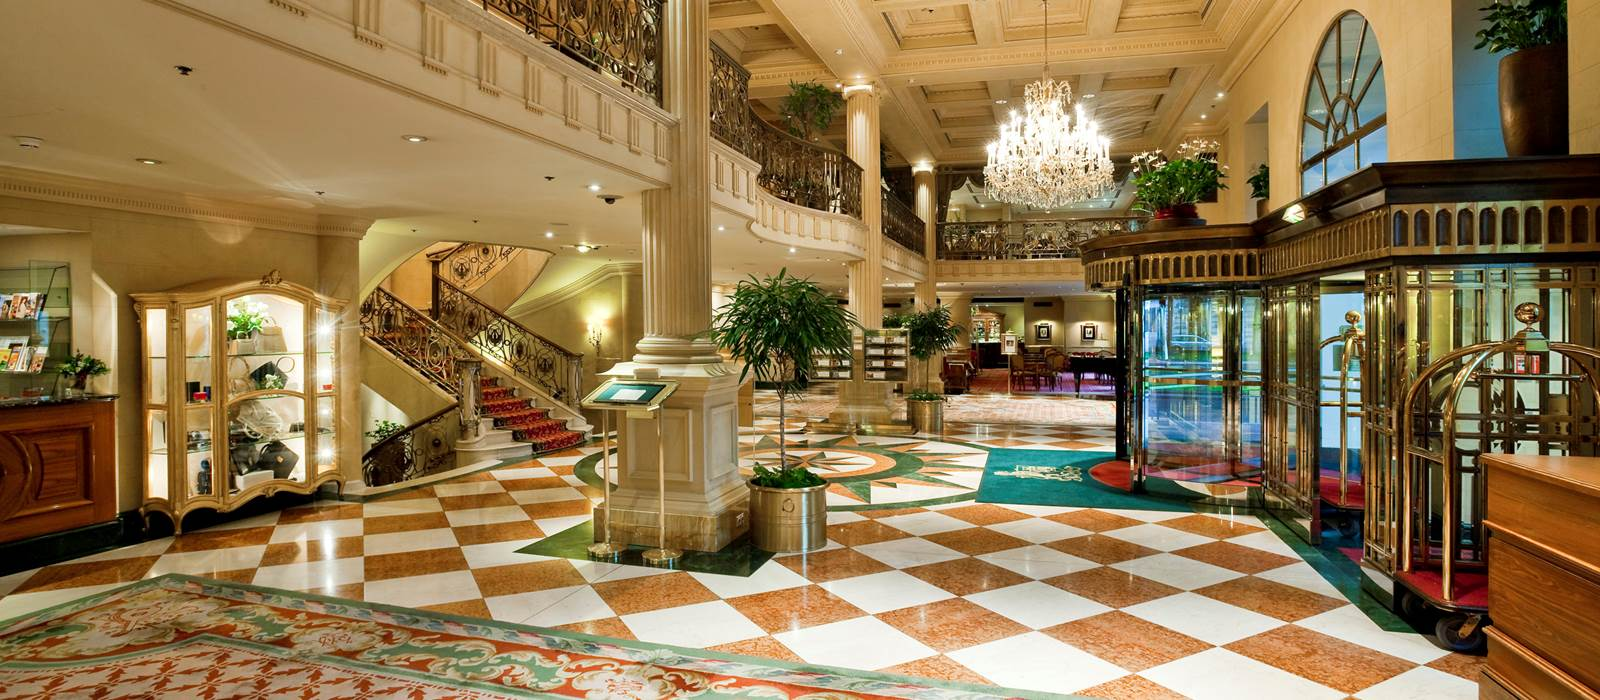 Grand hotel wien jjw hotels resorts for Grand hotel